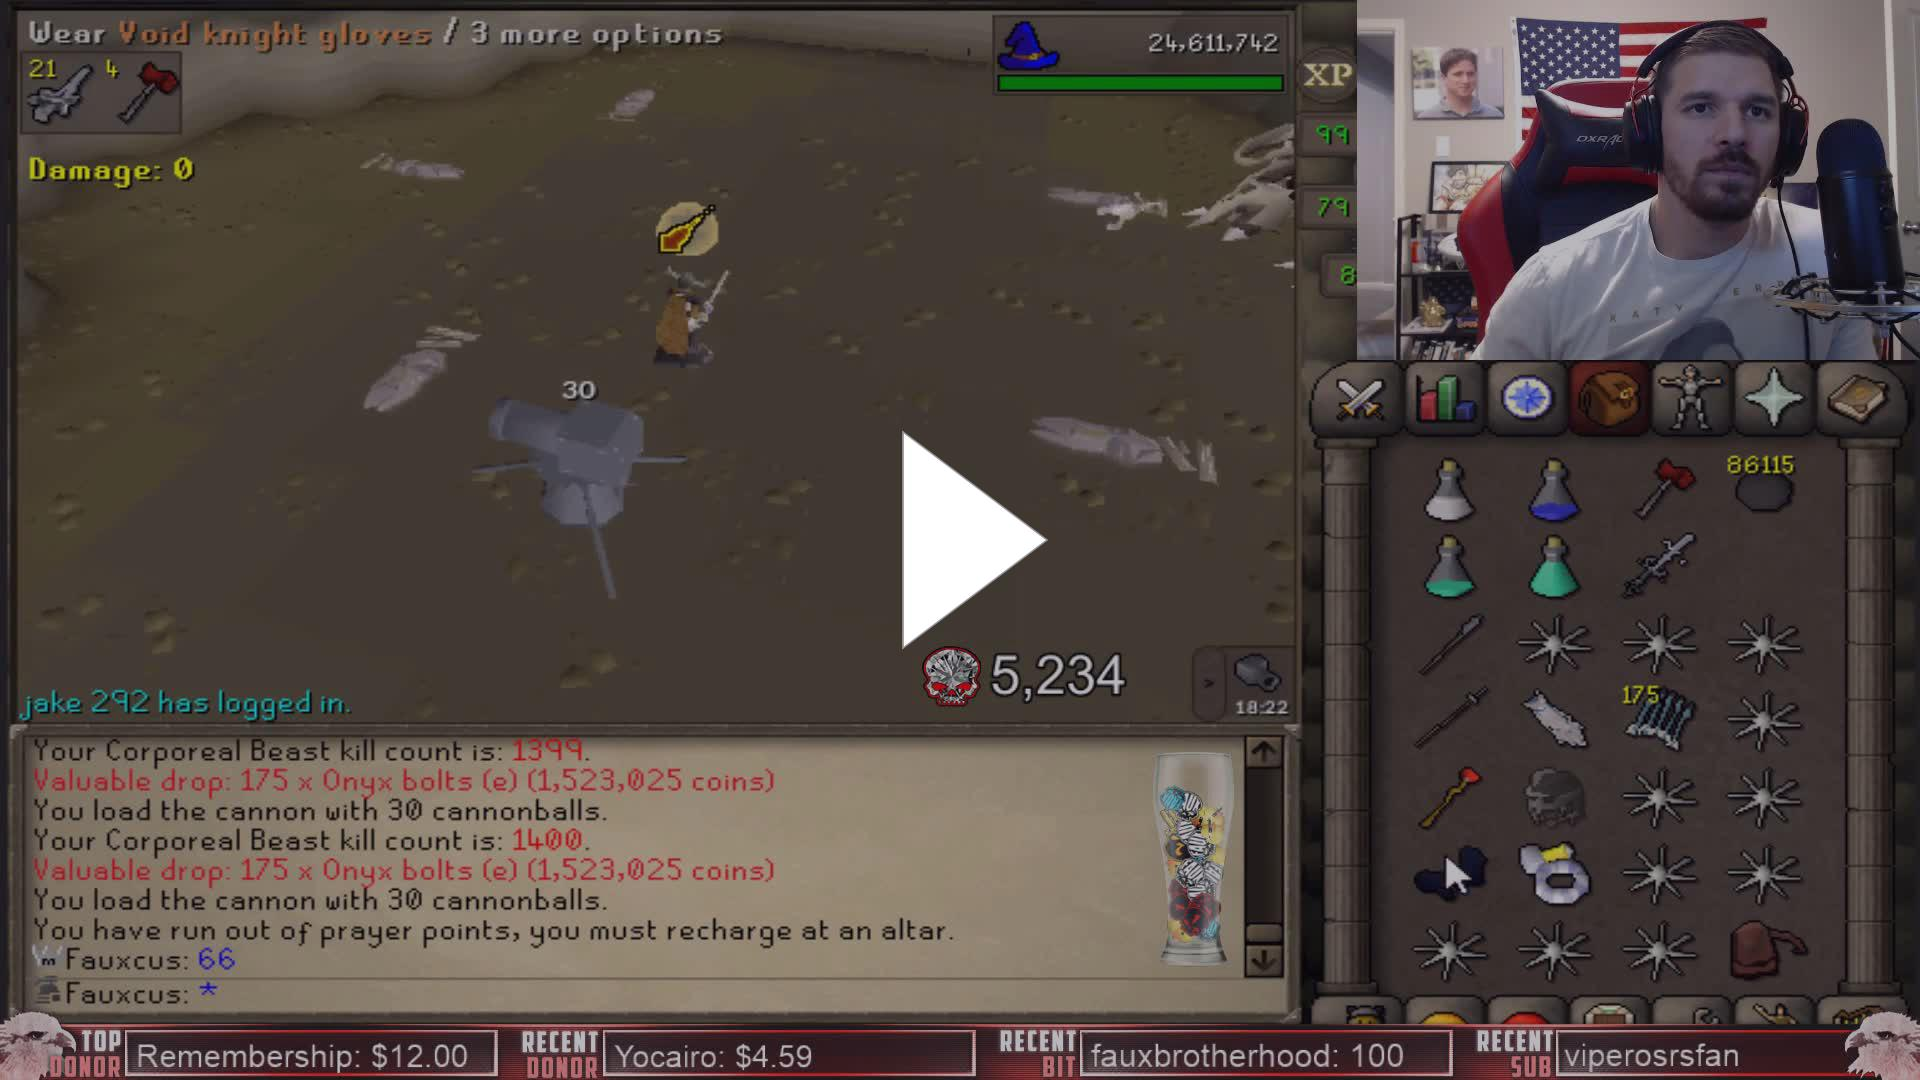 Faux - Why Faux prefers OSBuddy over RuneLite for Corp - Twitch